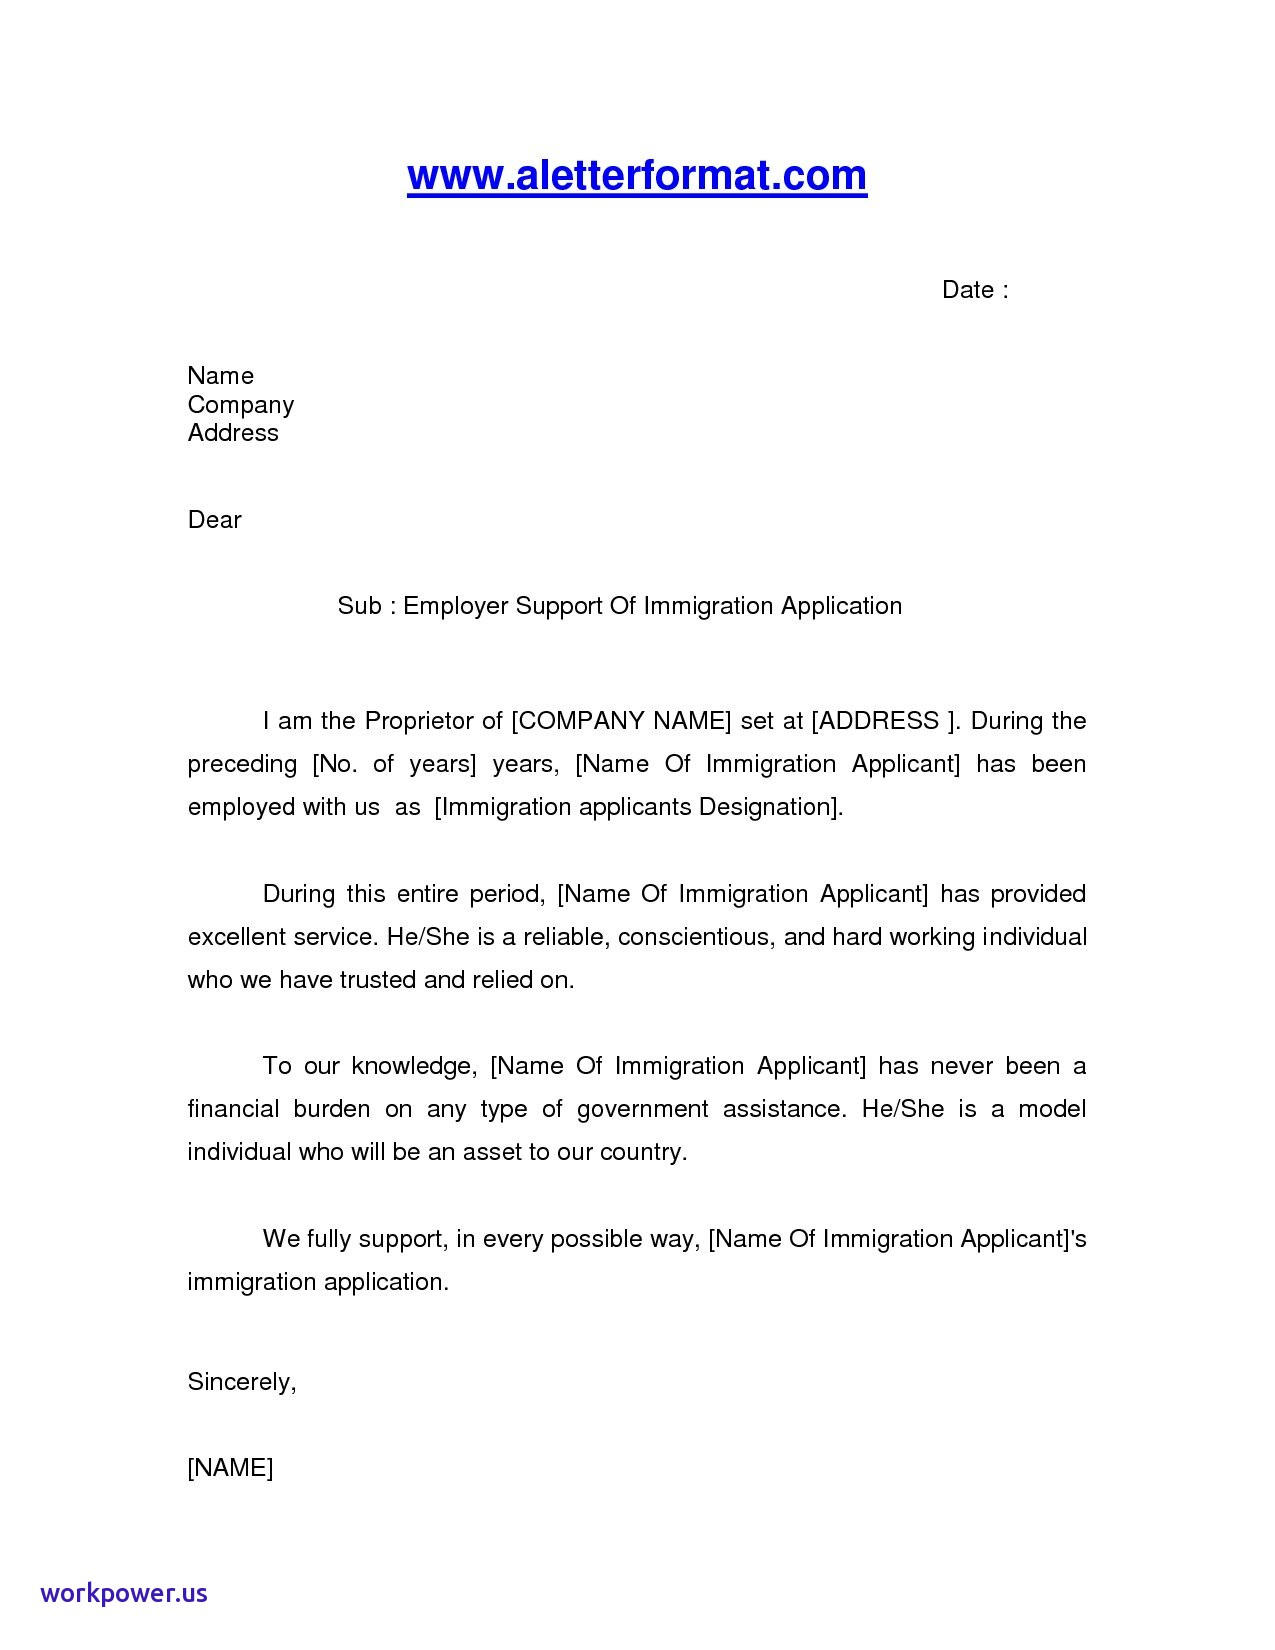 Immigration Reference Letter Template - Sample Immigration Reference Letter for Brother